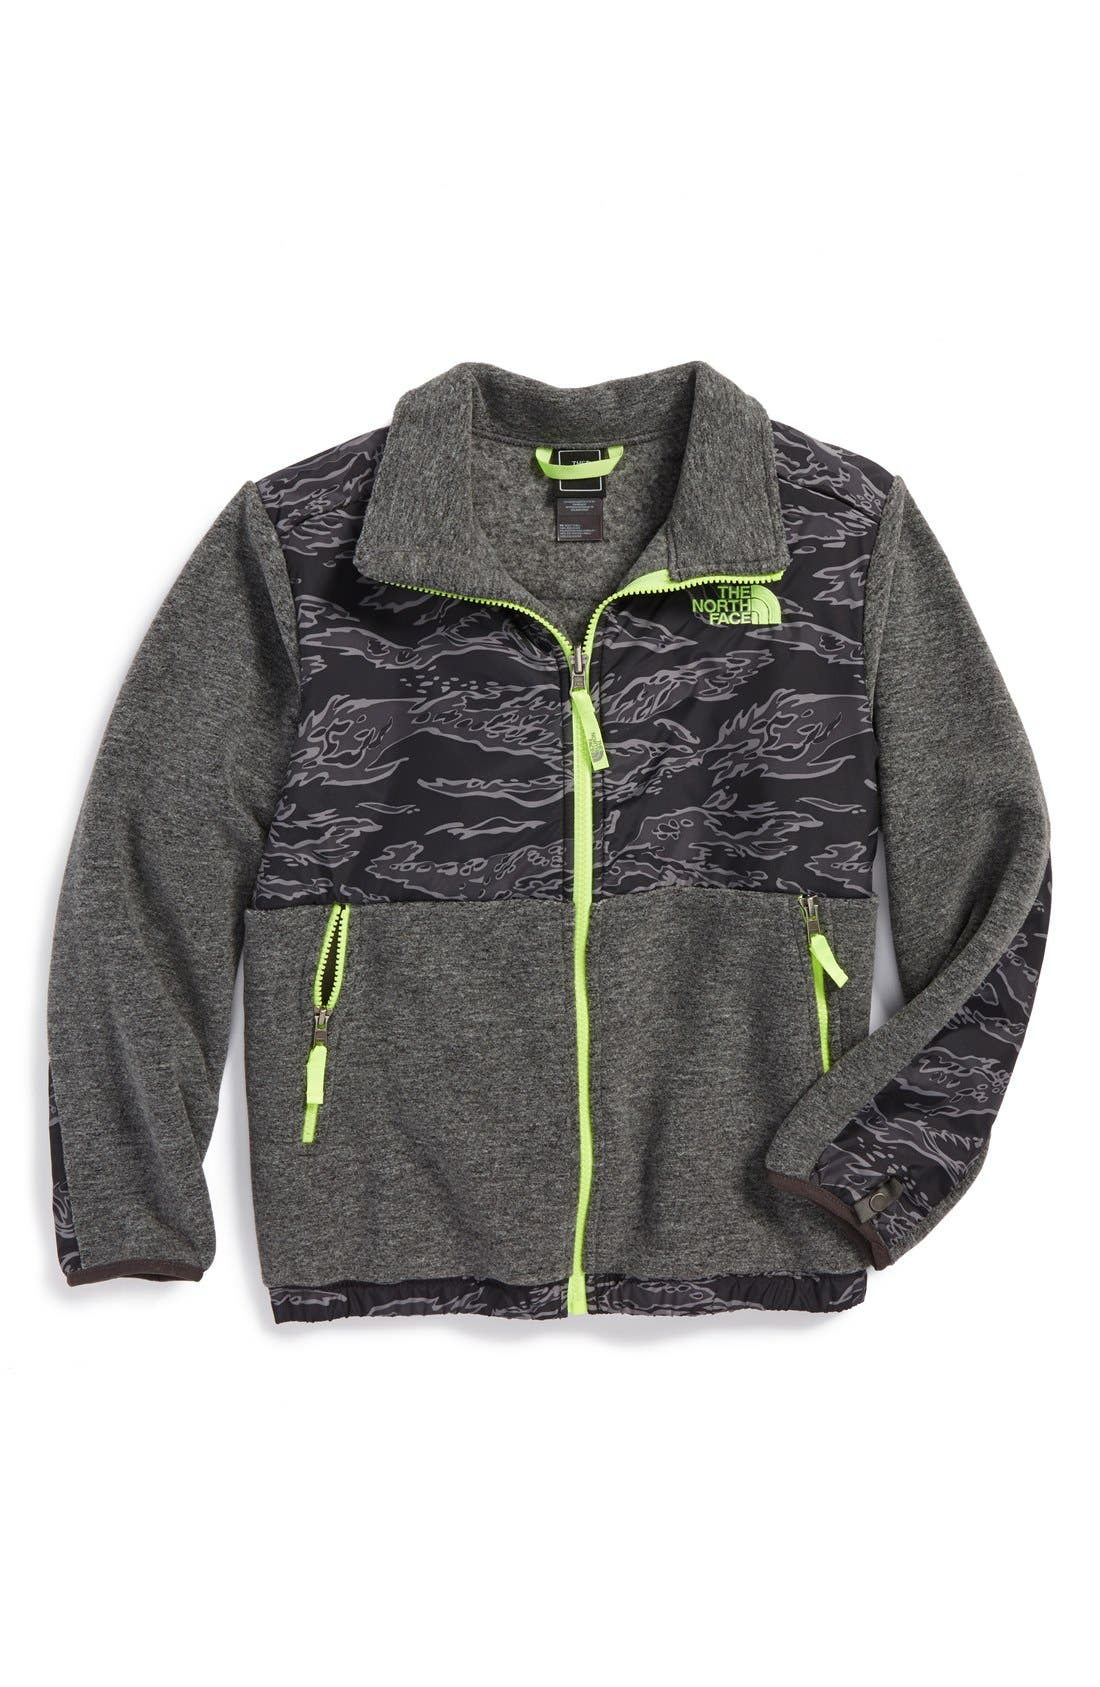 Alternate Image 1 Selected - The North Face 'Denali' Recycled Fleece Jacket (Big Boys)